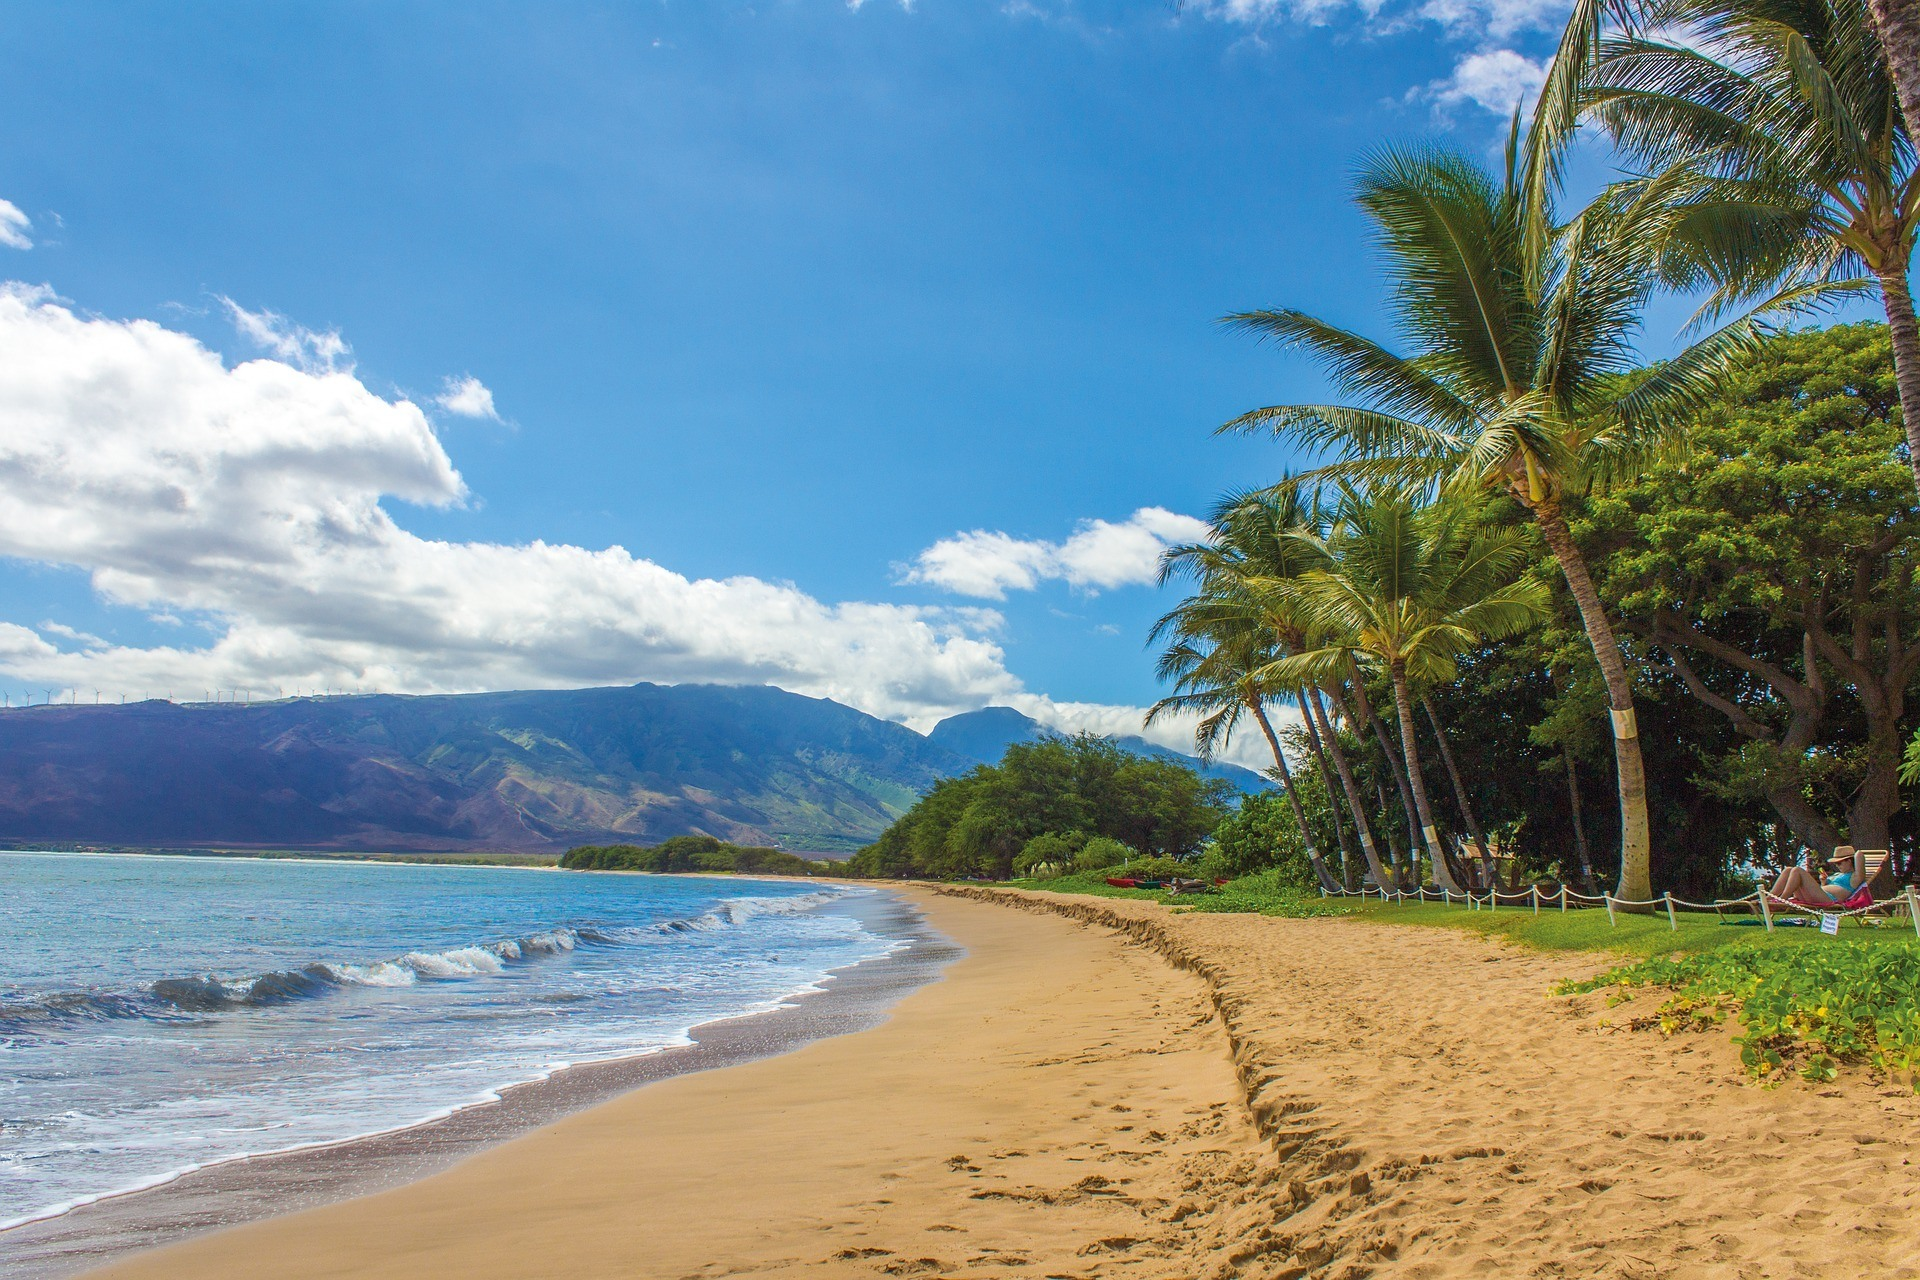 Prestine beach in Maui, Hawaii